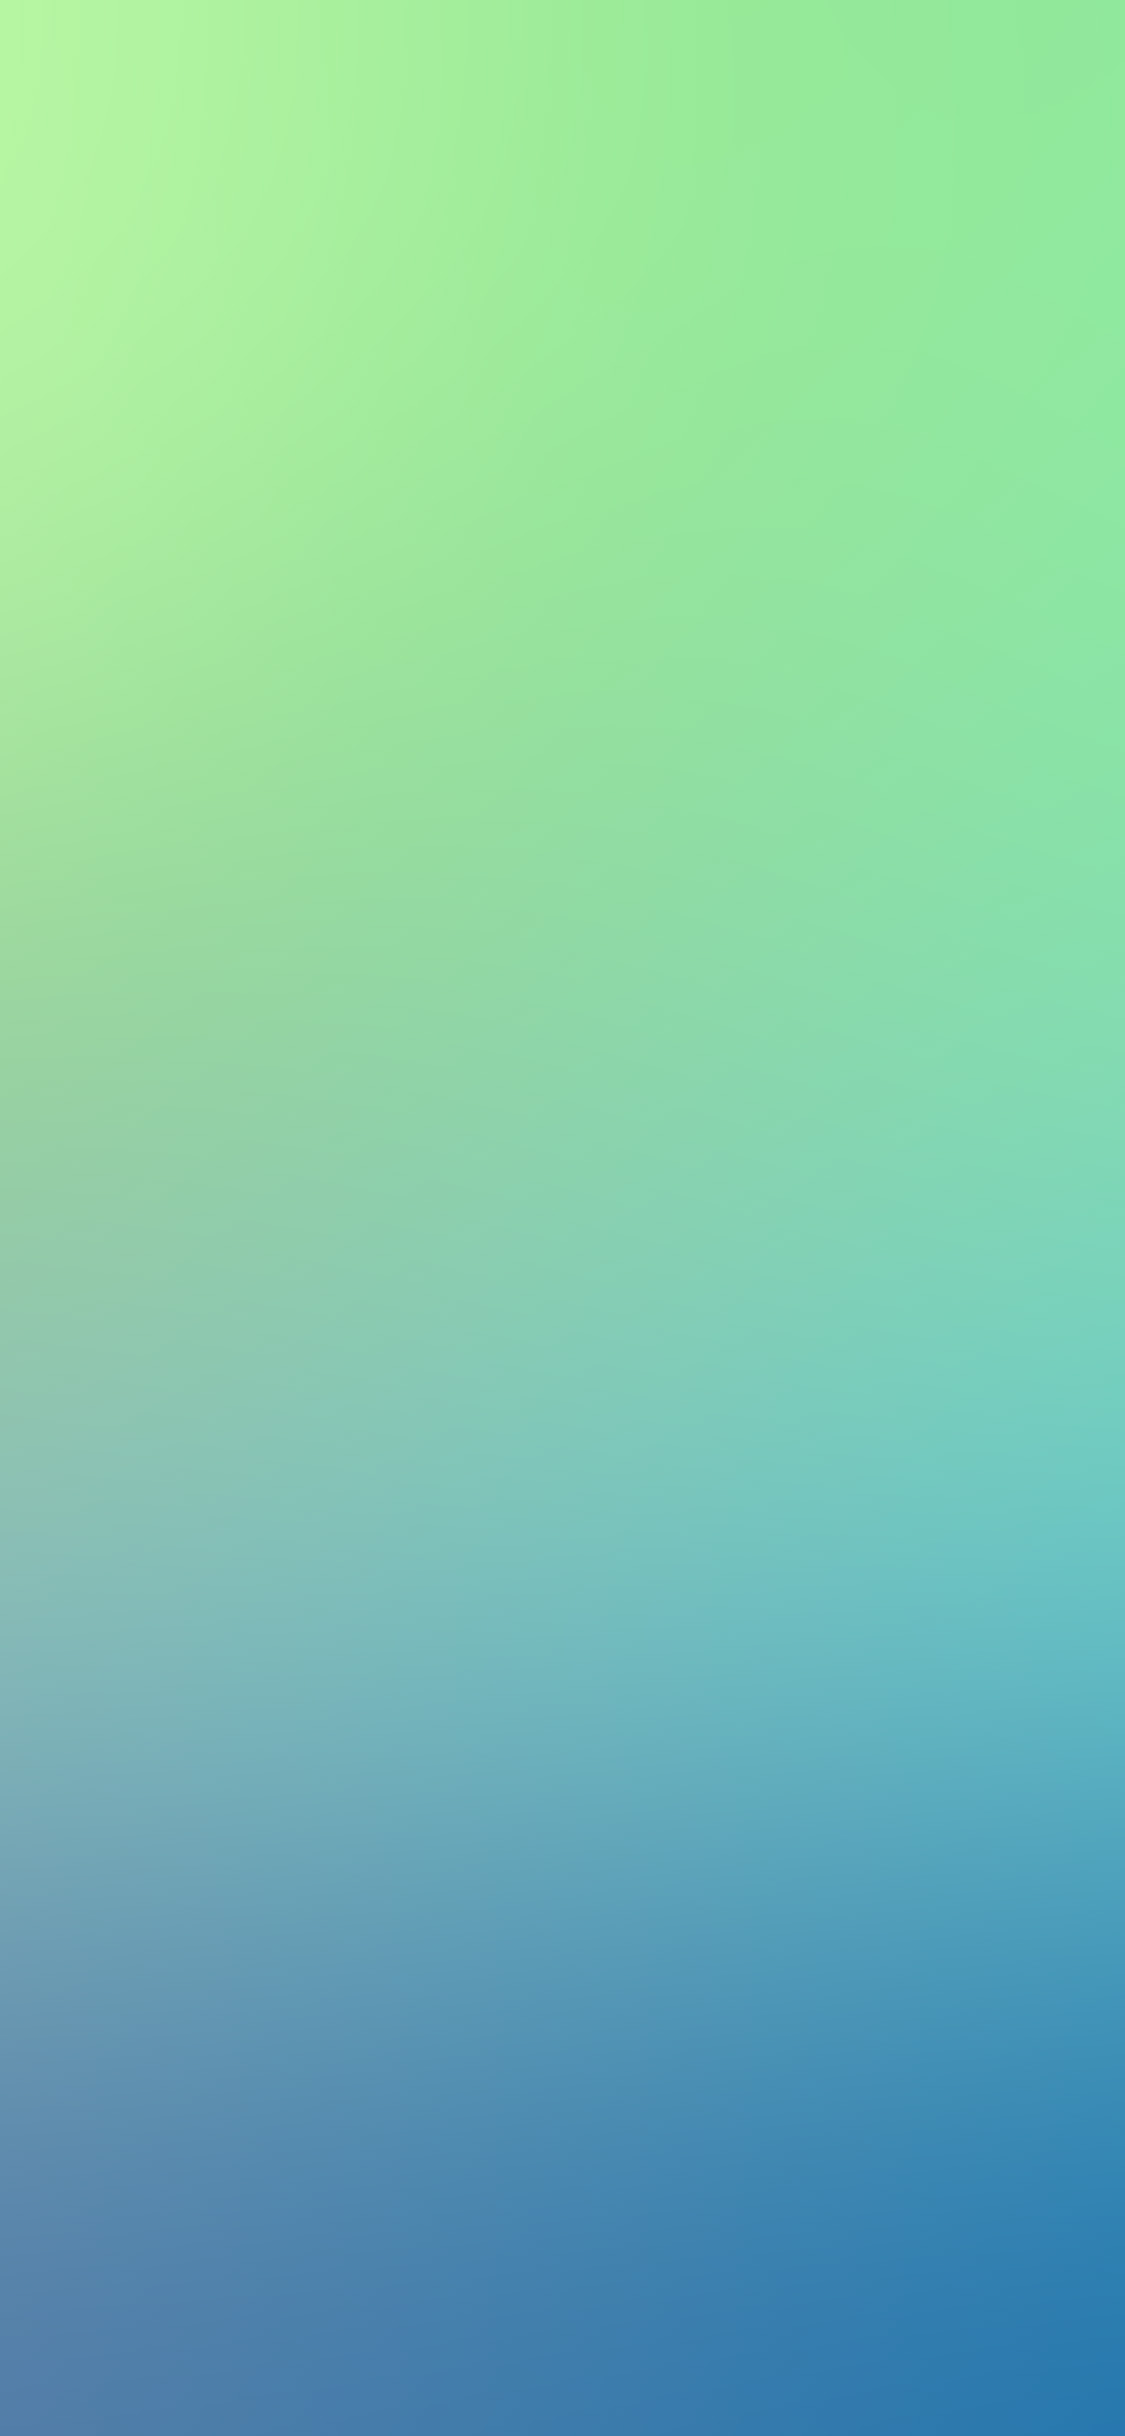 iPhonexpapers.com-Apple-iPhone-wallpaper-sm30-blue-green-blur-gradation